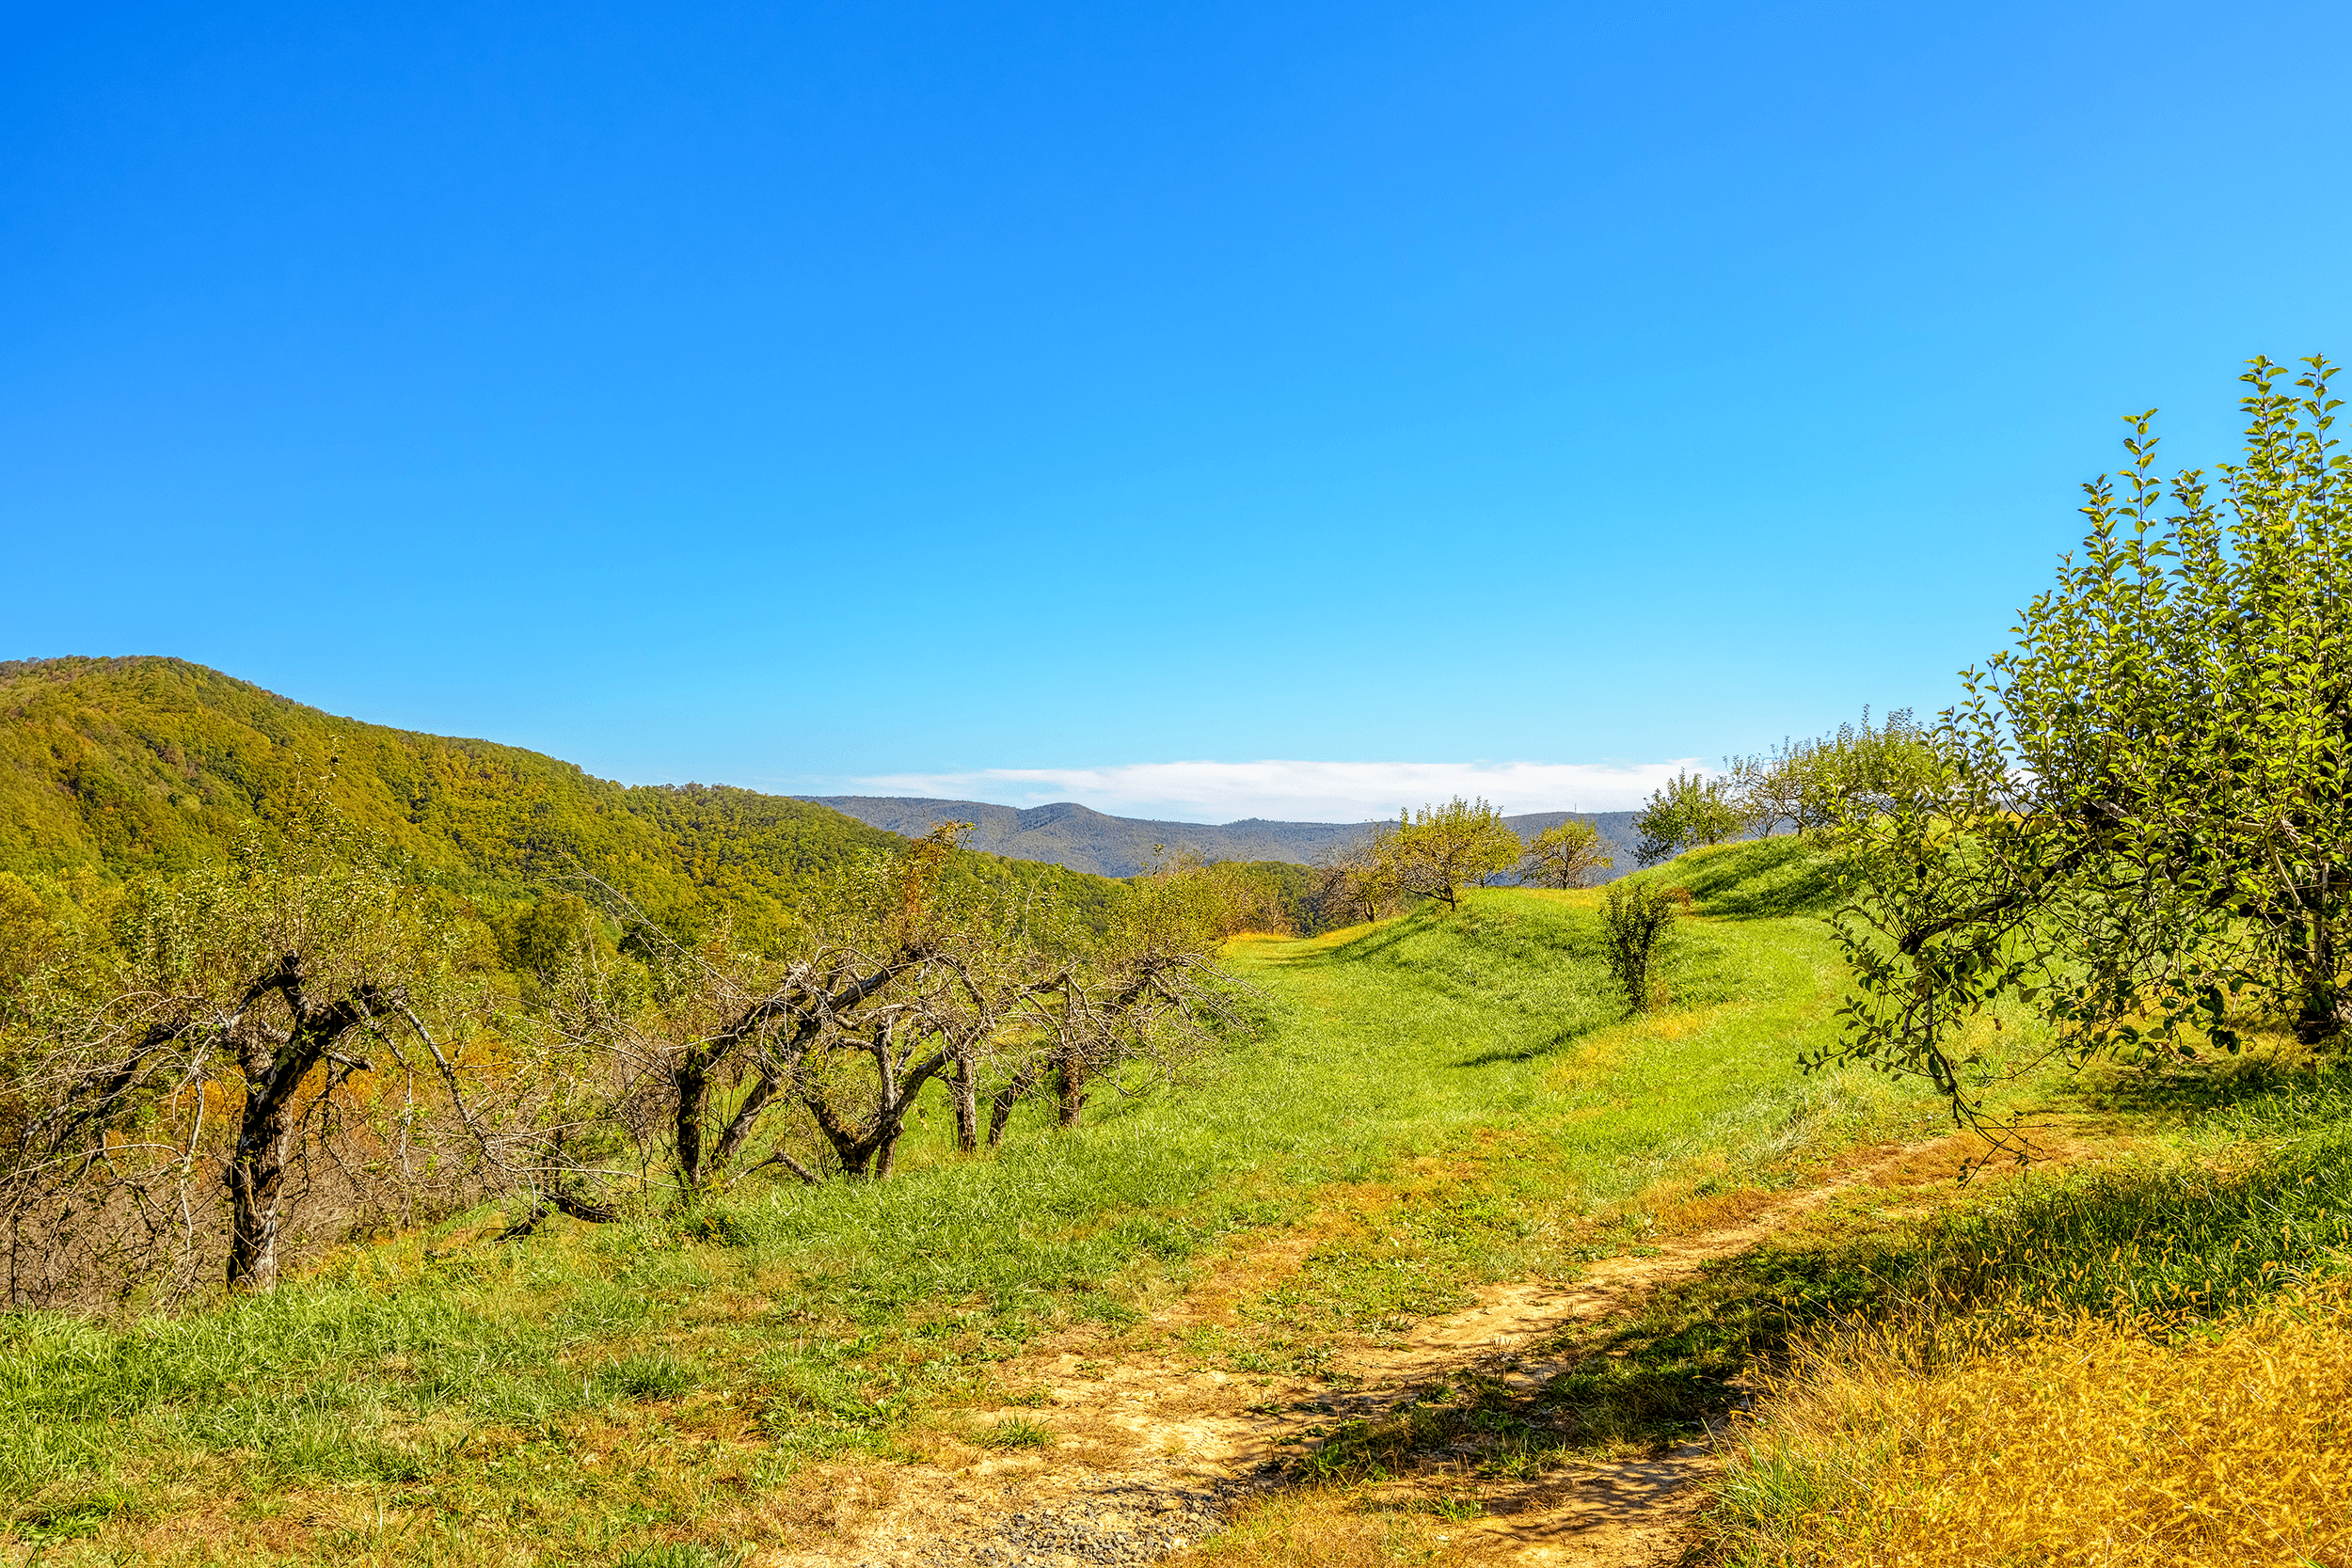 After hiking uphill from  The Woods , the second scenic lookout point rewards you with another picturesque view.